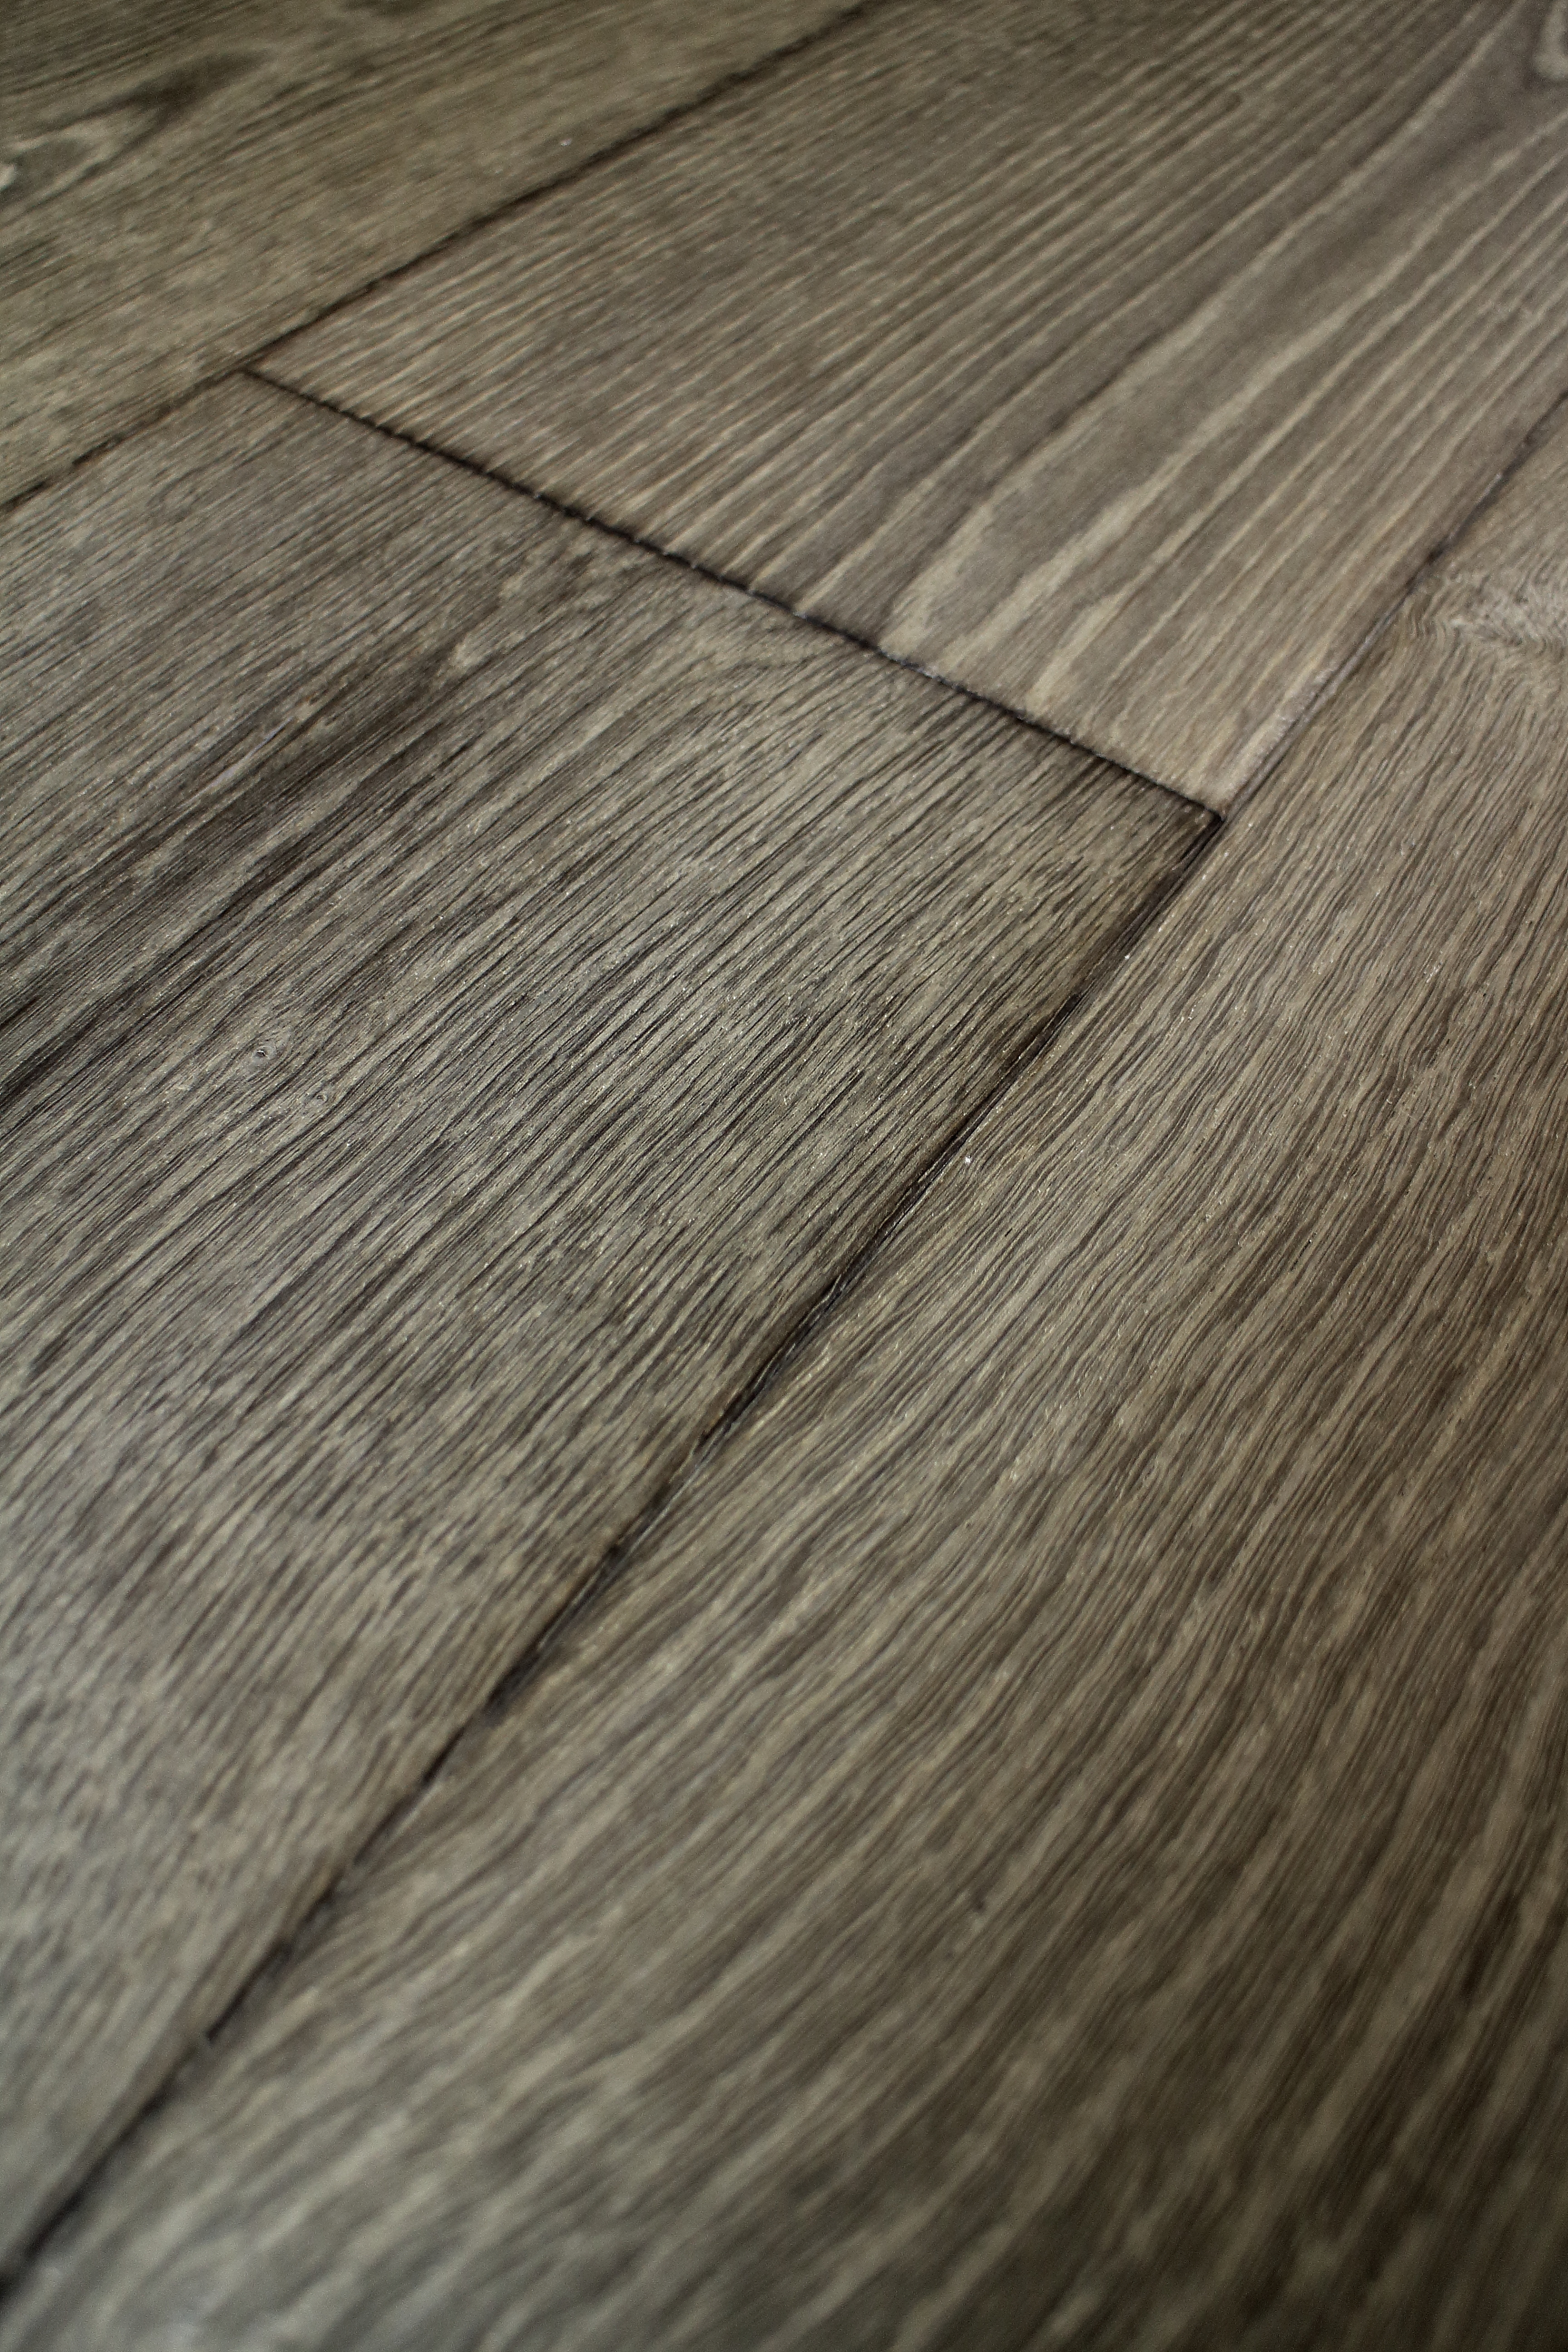 Grey Textured Brushed Distressed Oiled Wooden Flooring